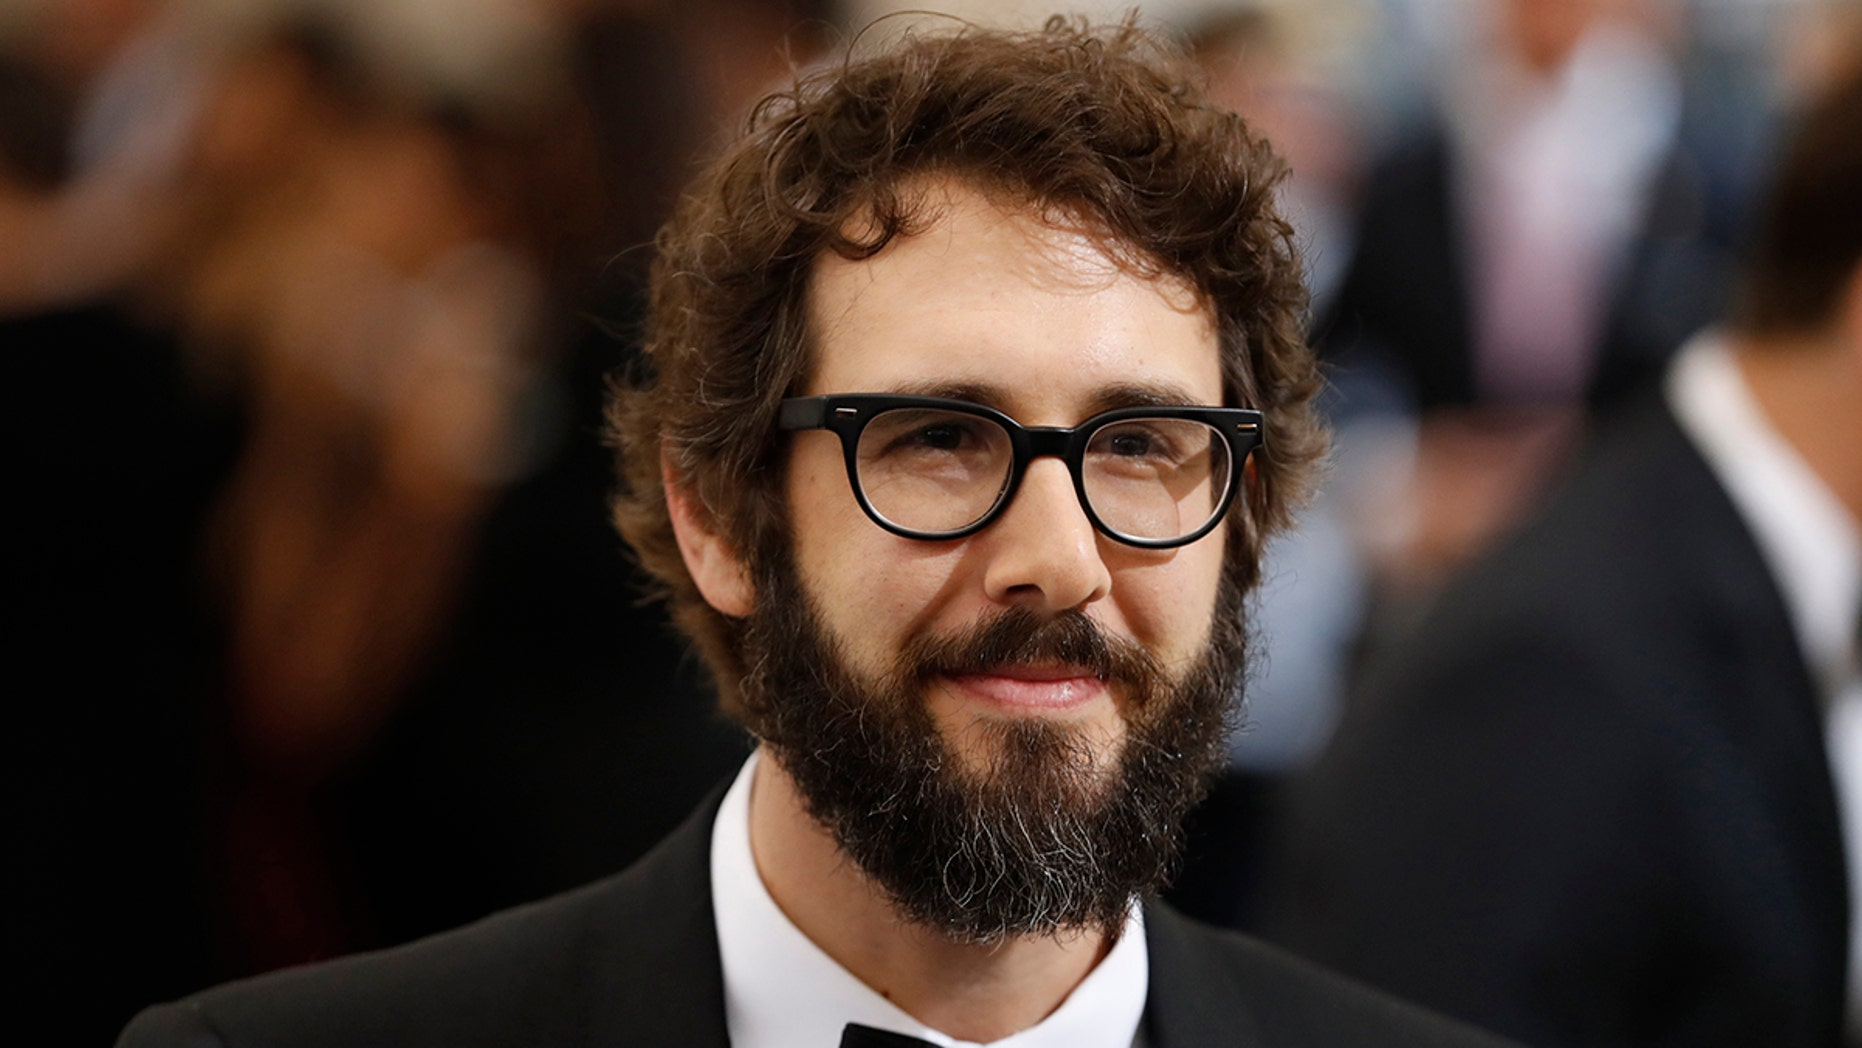 Singer Josh Groban, pictured here at the Metropolitan Museum of Art Costume Institute Gala in 2017, recently tweeted from the scene of the New York crash incident.